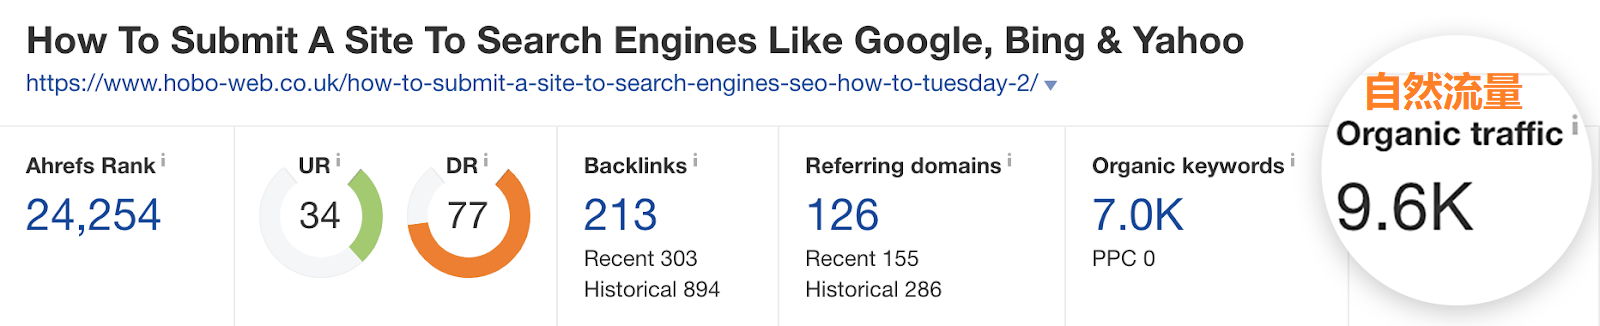 OK15 submit to search engines top ranking